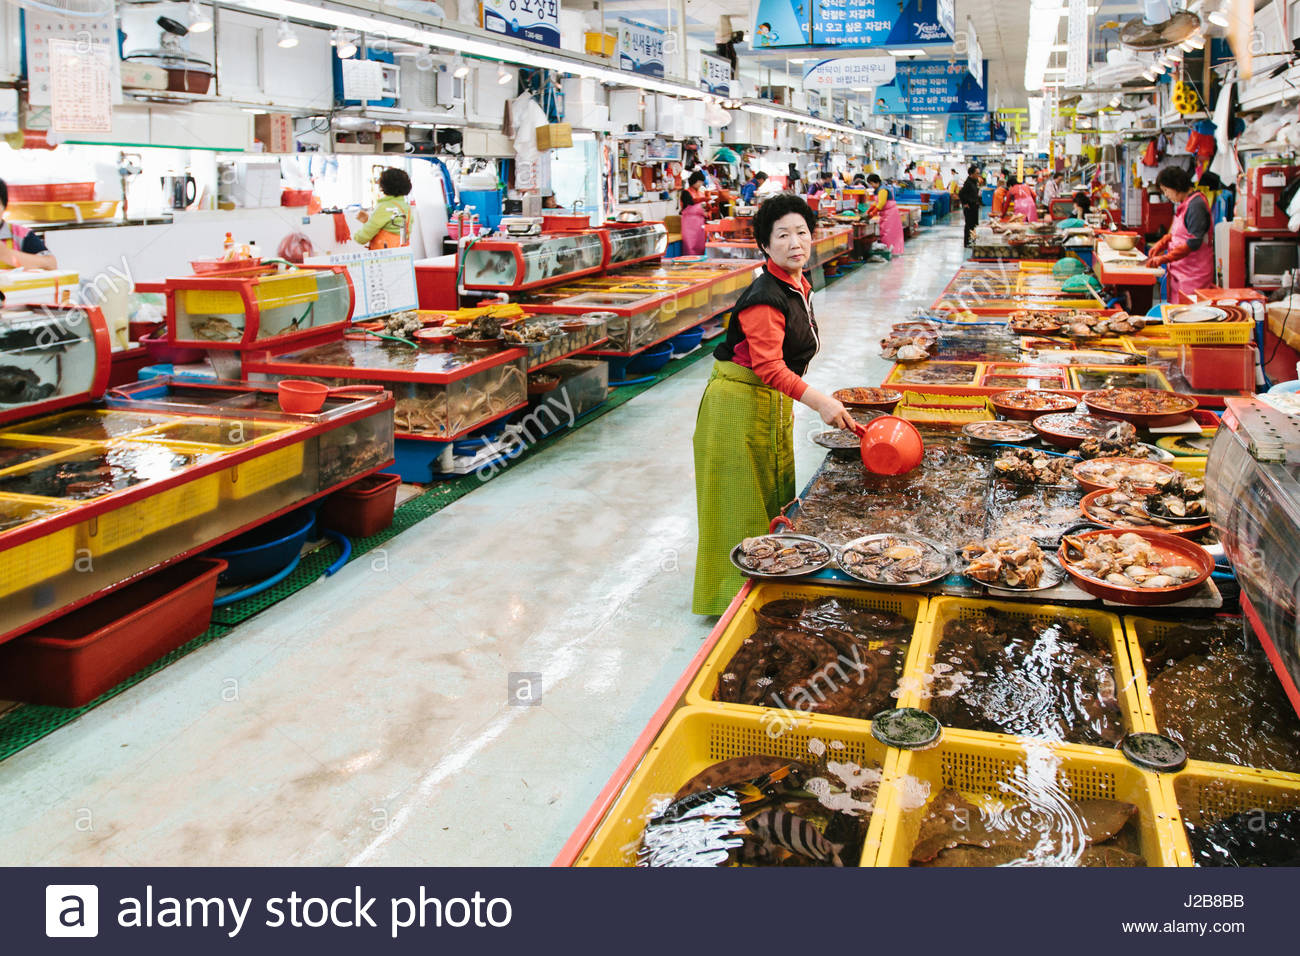 Seafood tank stock photos seafood tank stock images alamy for Online fish store